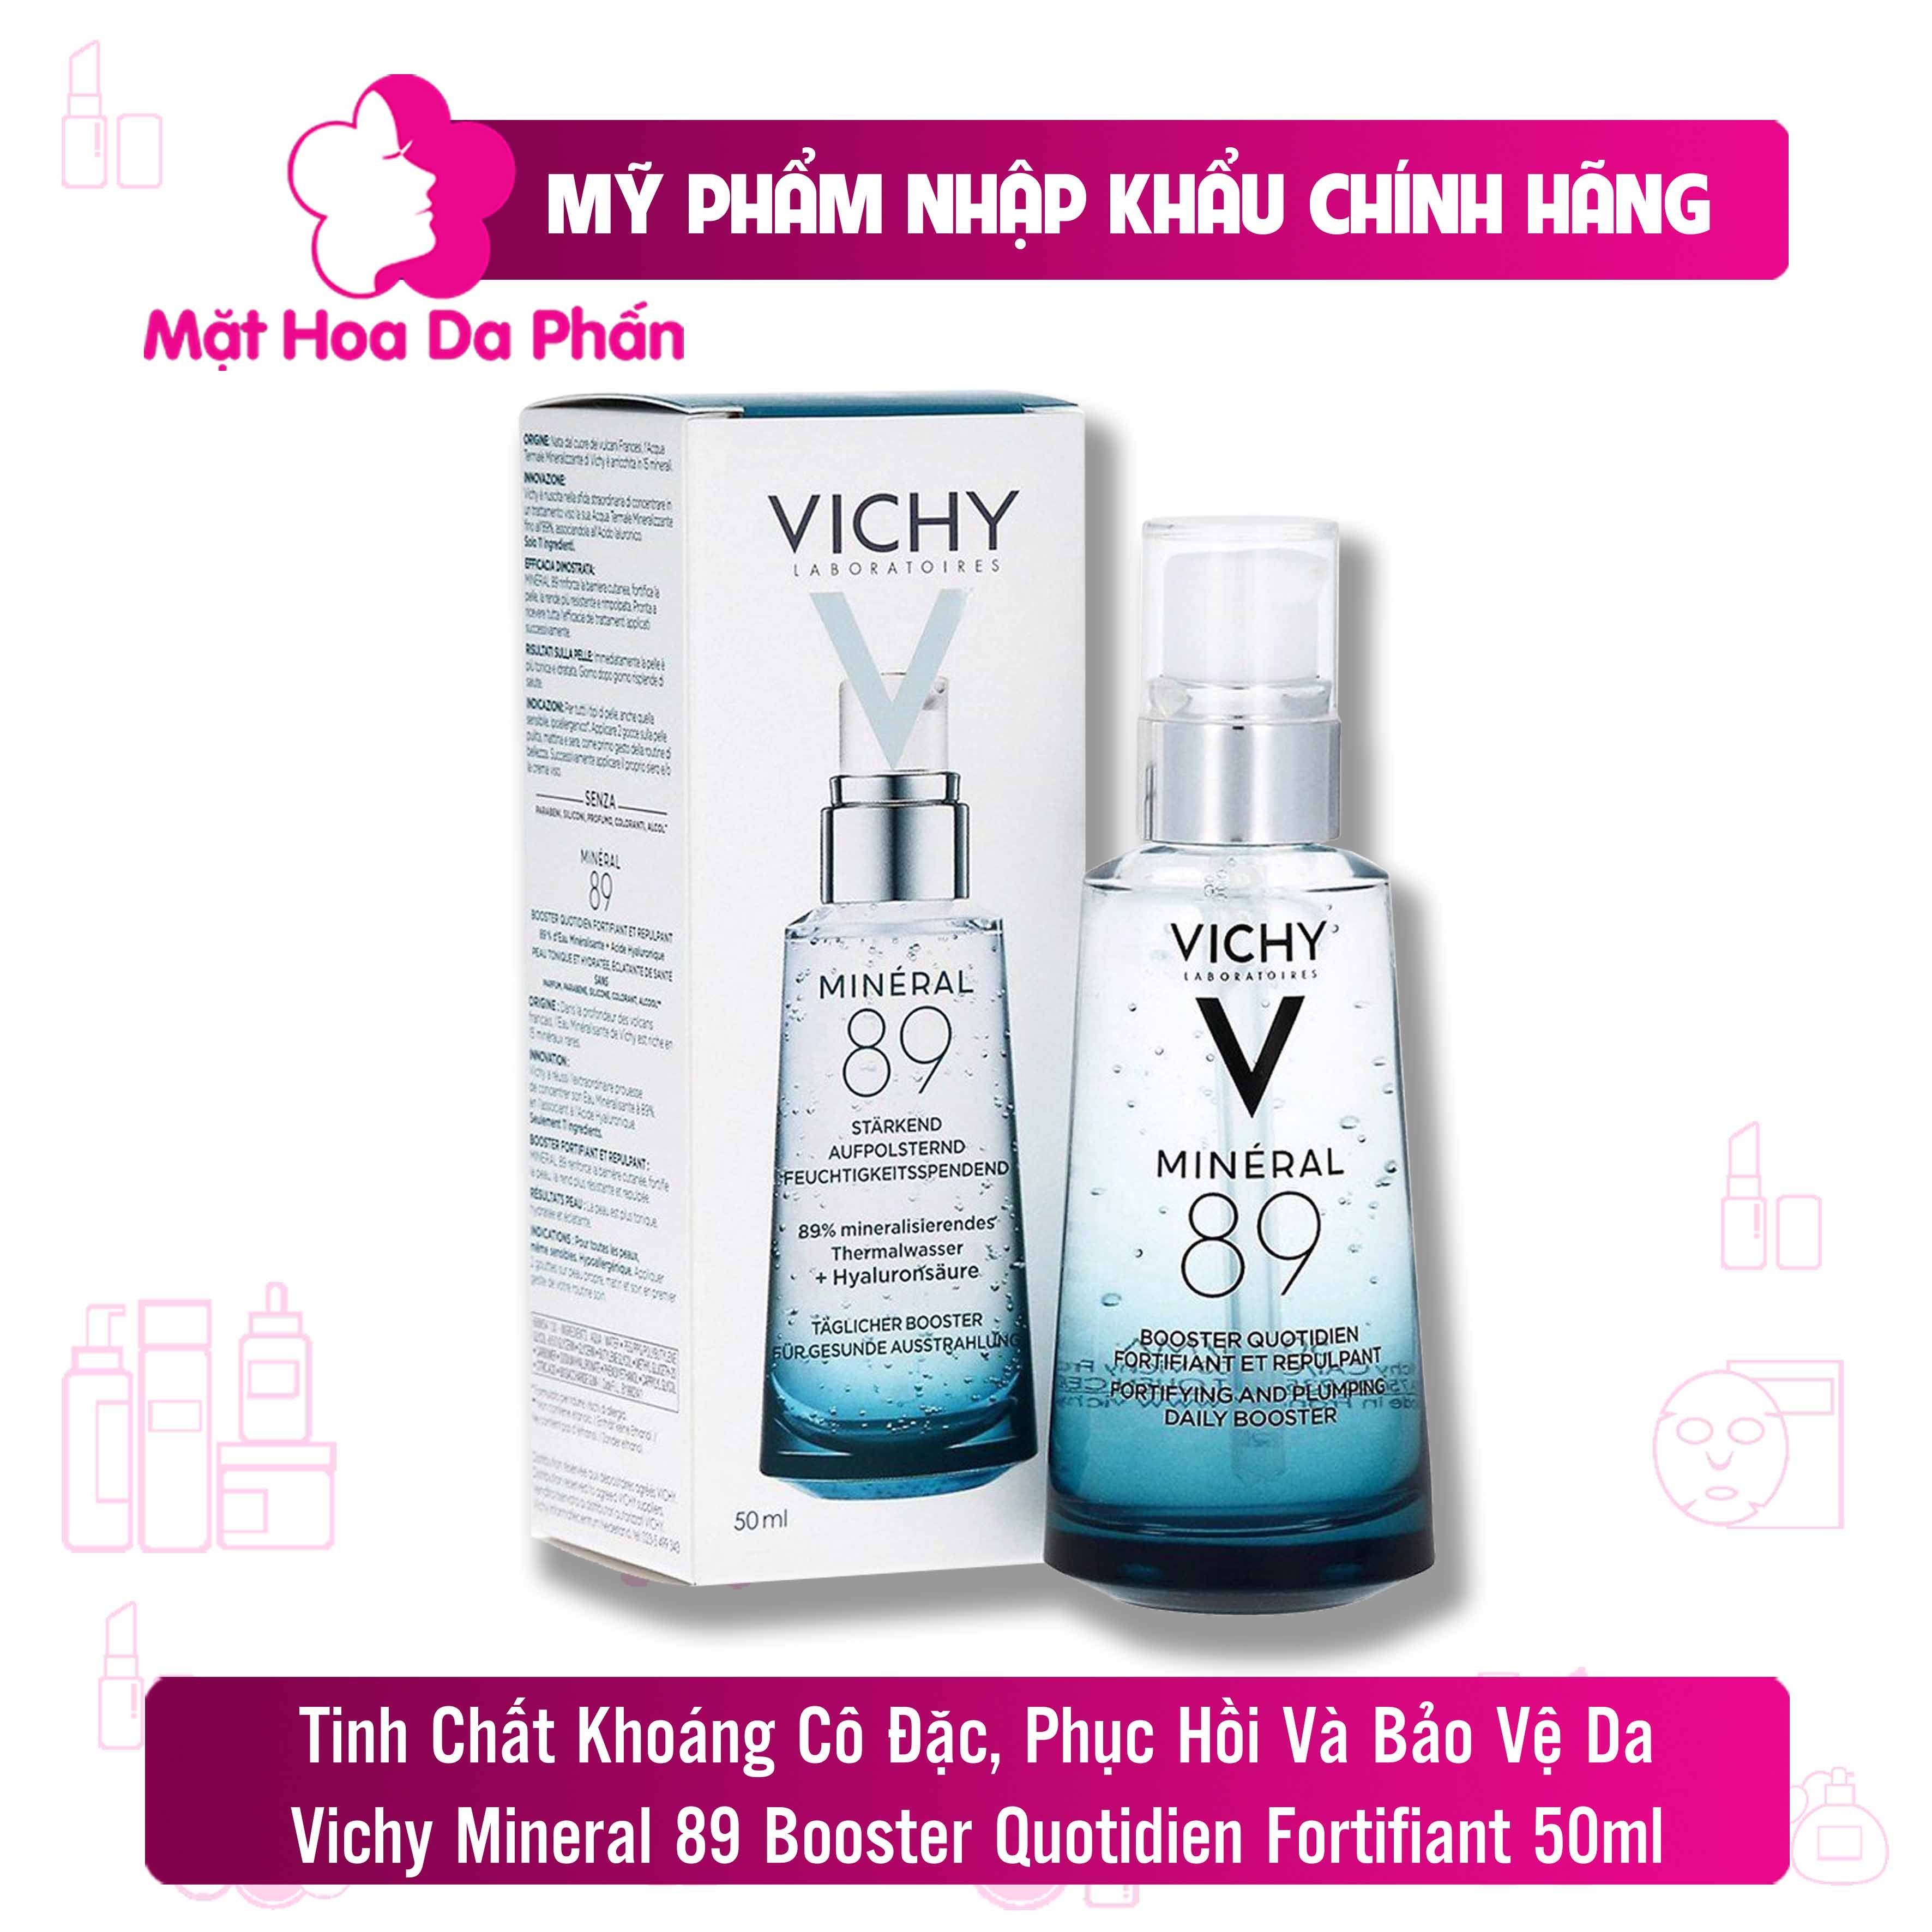 Tinh Chất Vichy Mineral 89 Booster Quotidien Fortifiant 50ml CTY